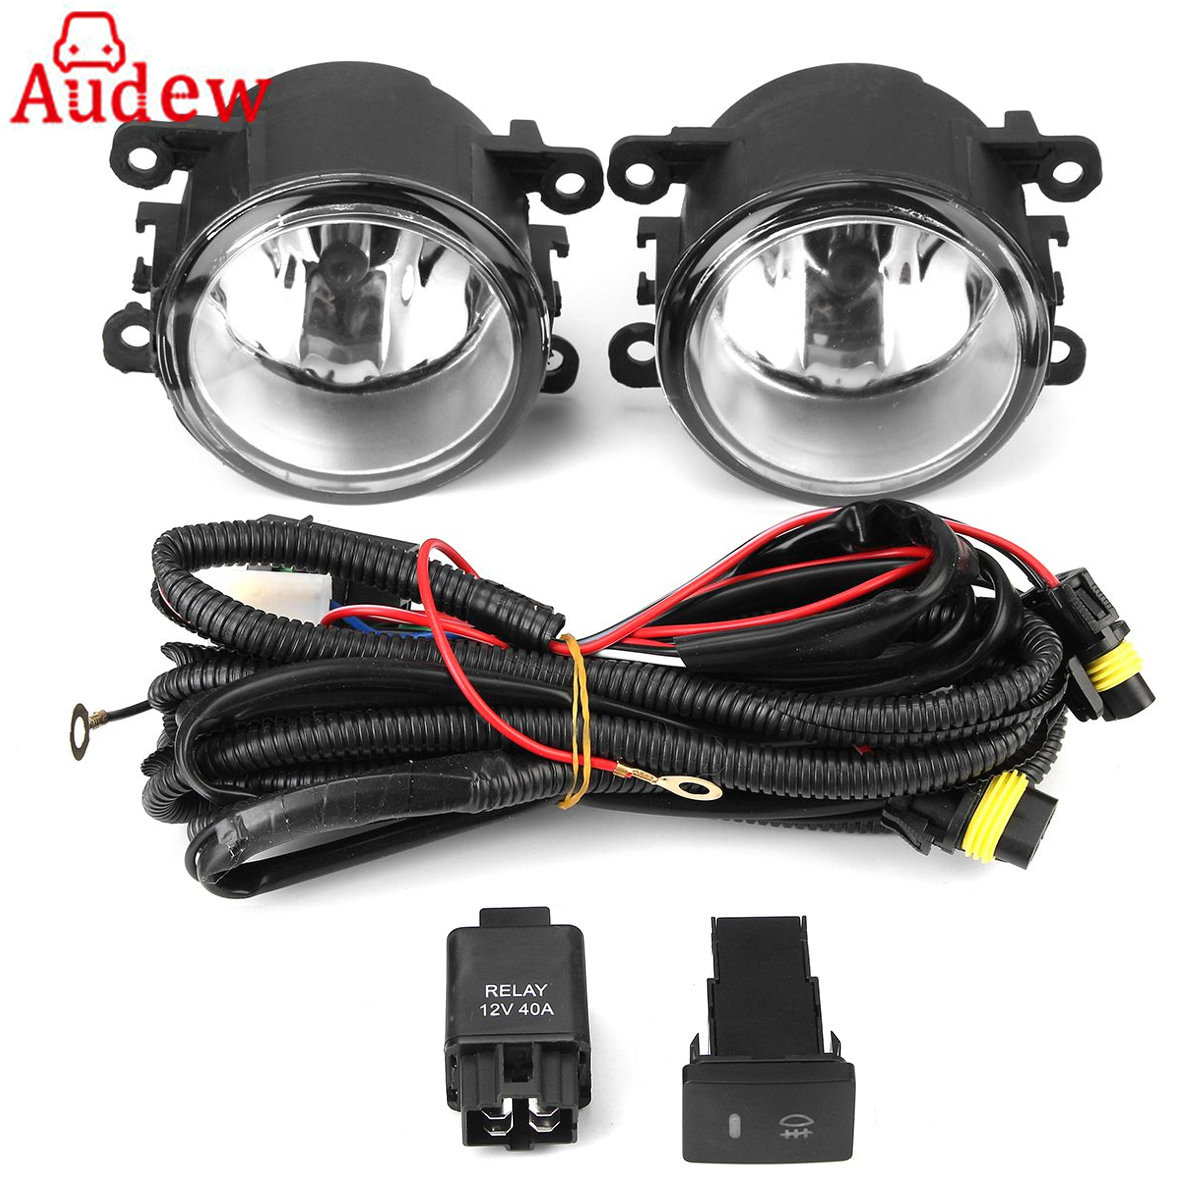 Pair Front Fog Light Clear Lens With Wiring Kit For Subaru Impreza/WRX/WRX STI/XV high quality fog lights lamps safety fog light fit for toyota yaris 2009 2010 2011 with clear lens pair set wiring kit